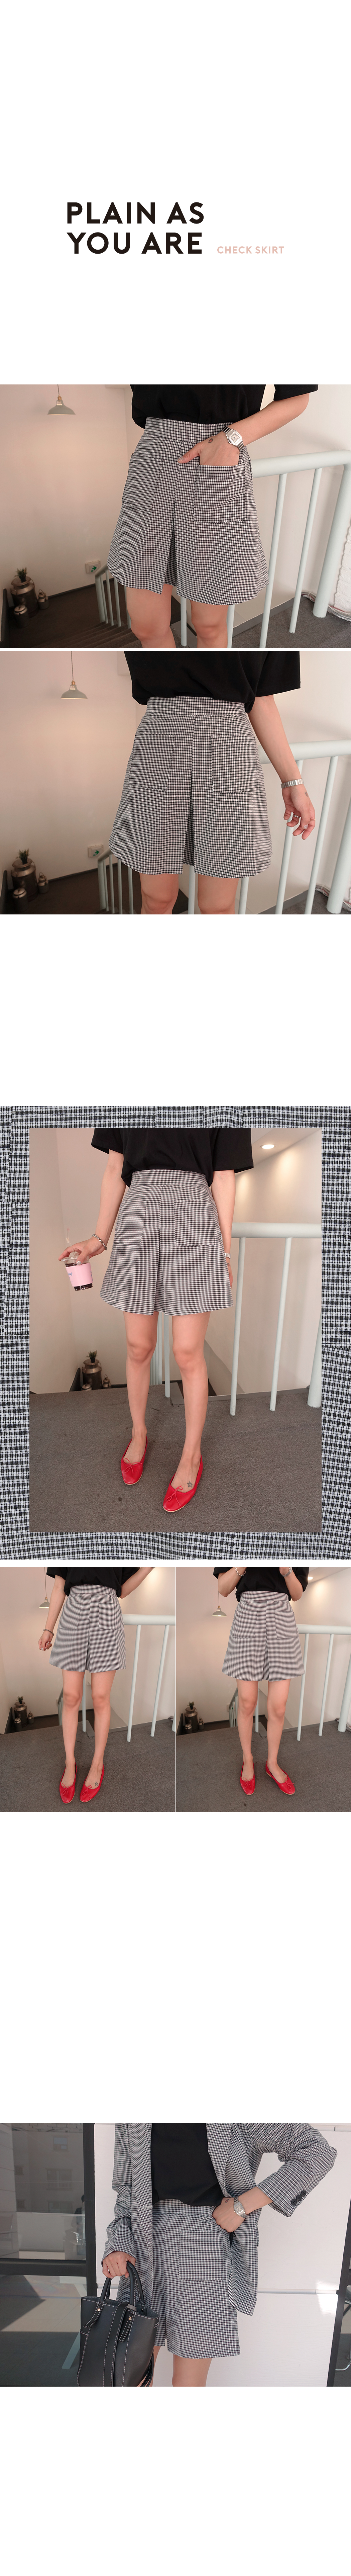 Charlie-Searsucker skirt